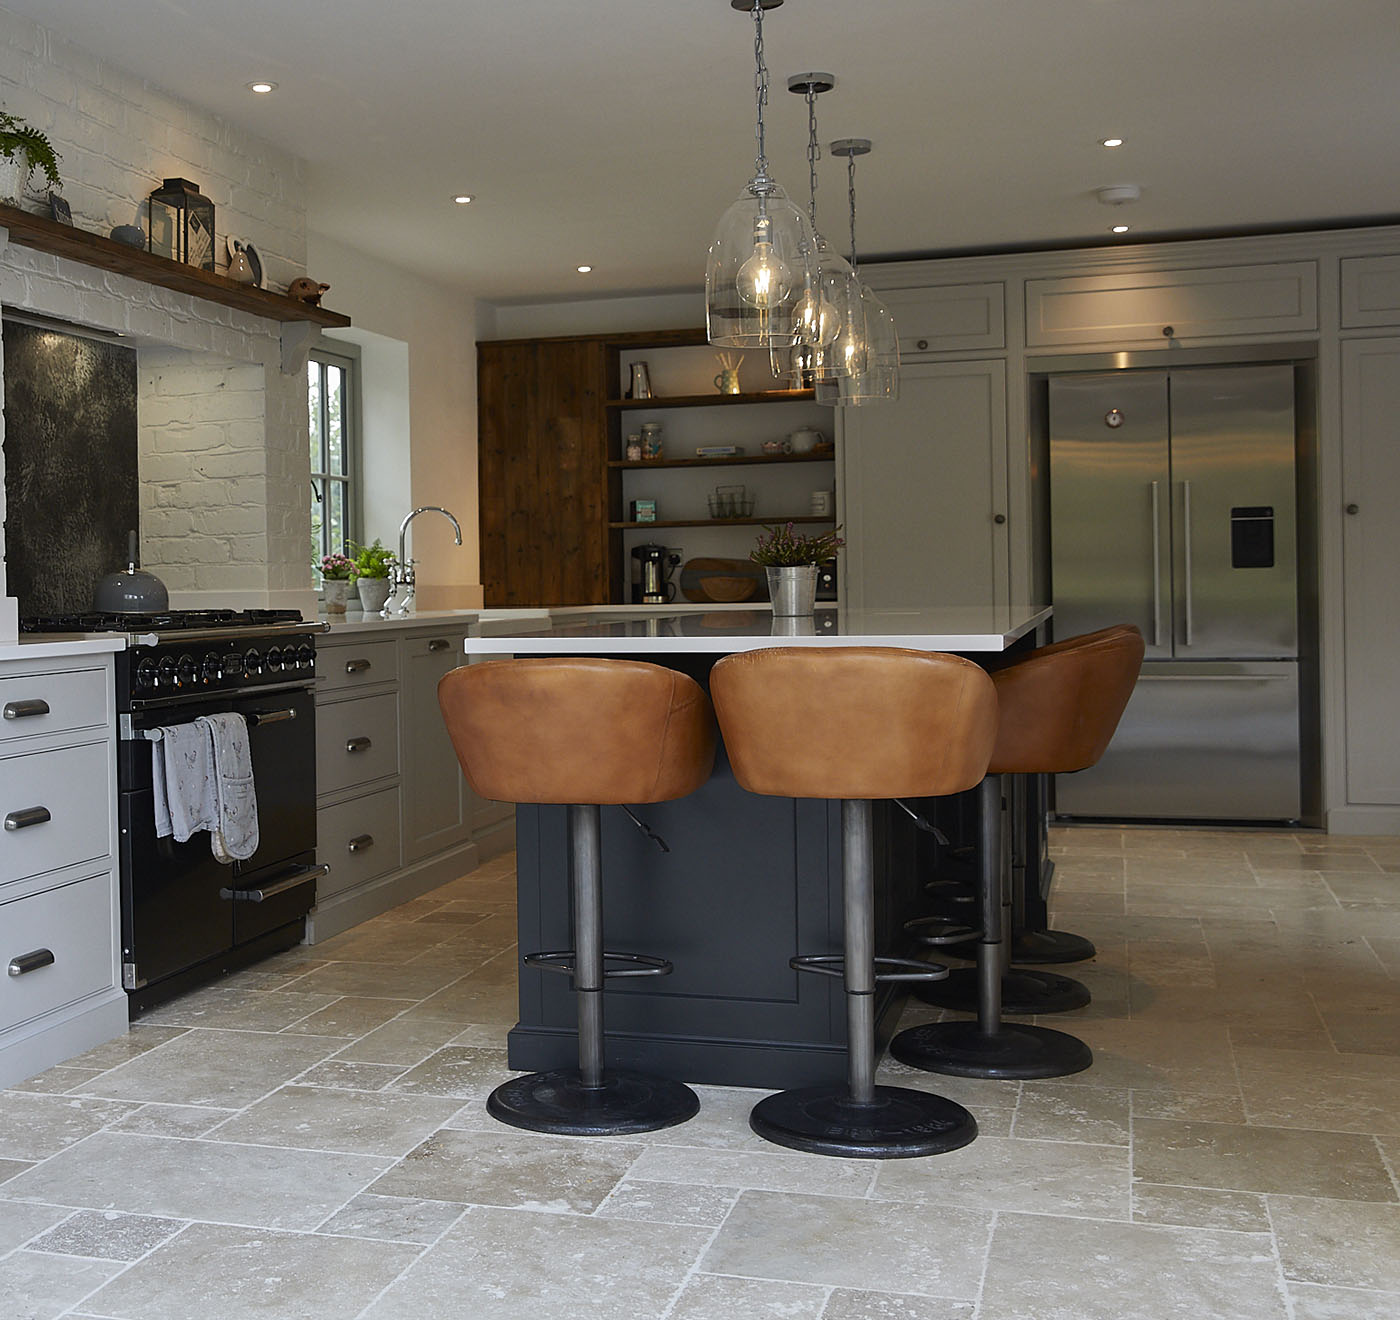 Brown leather barstools under kitchen island next to black Lacanche range cooker